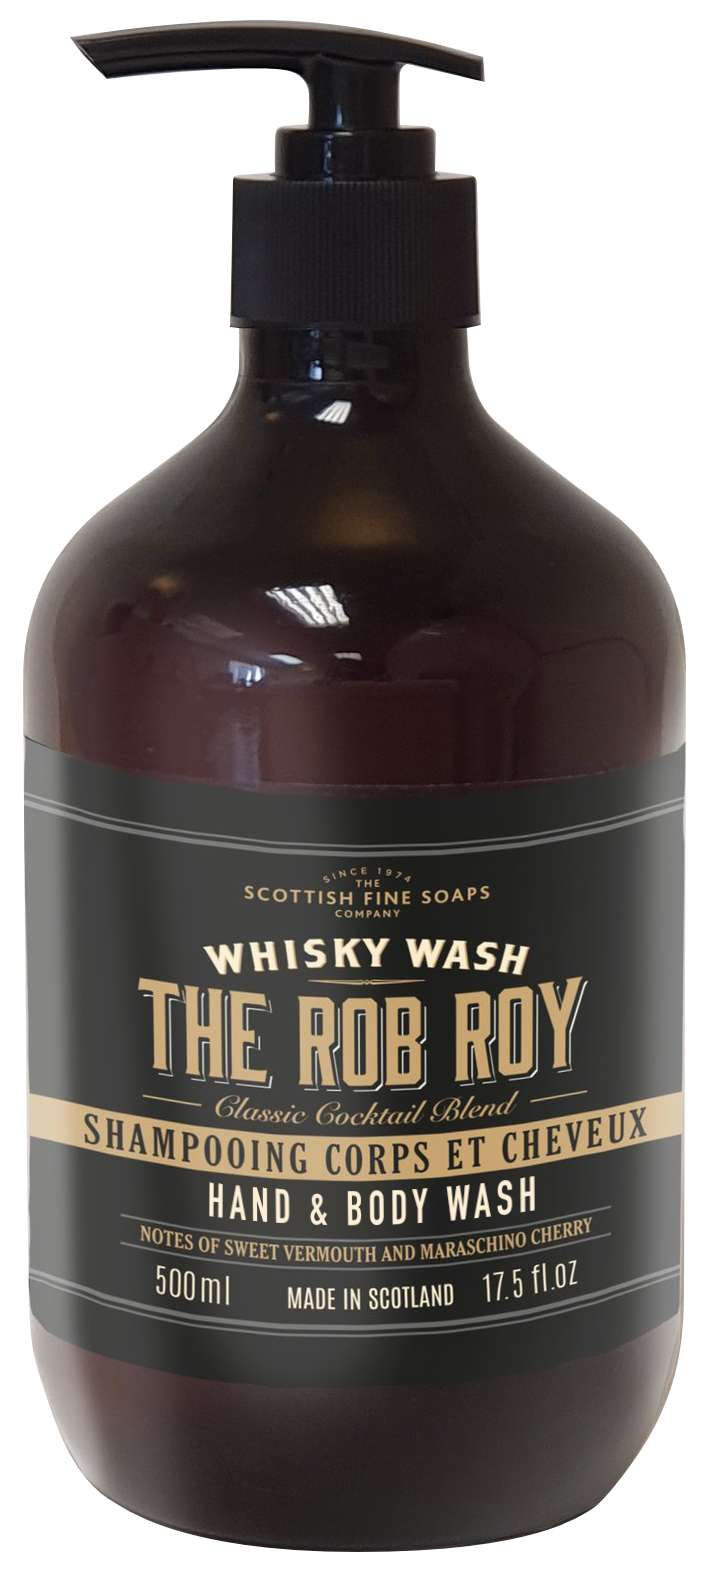 Rob Roy hand and body wash